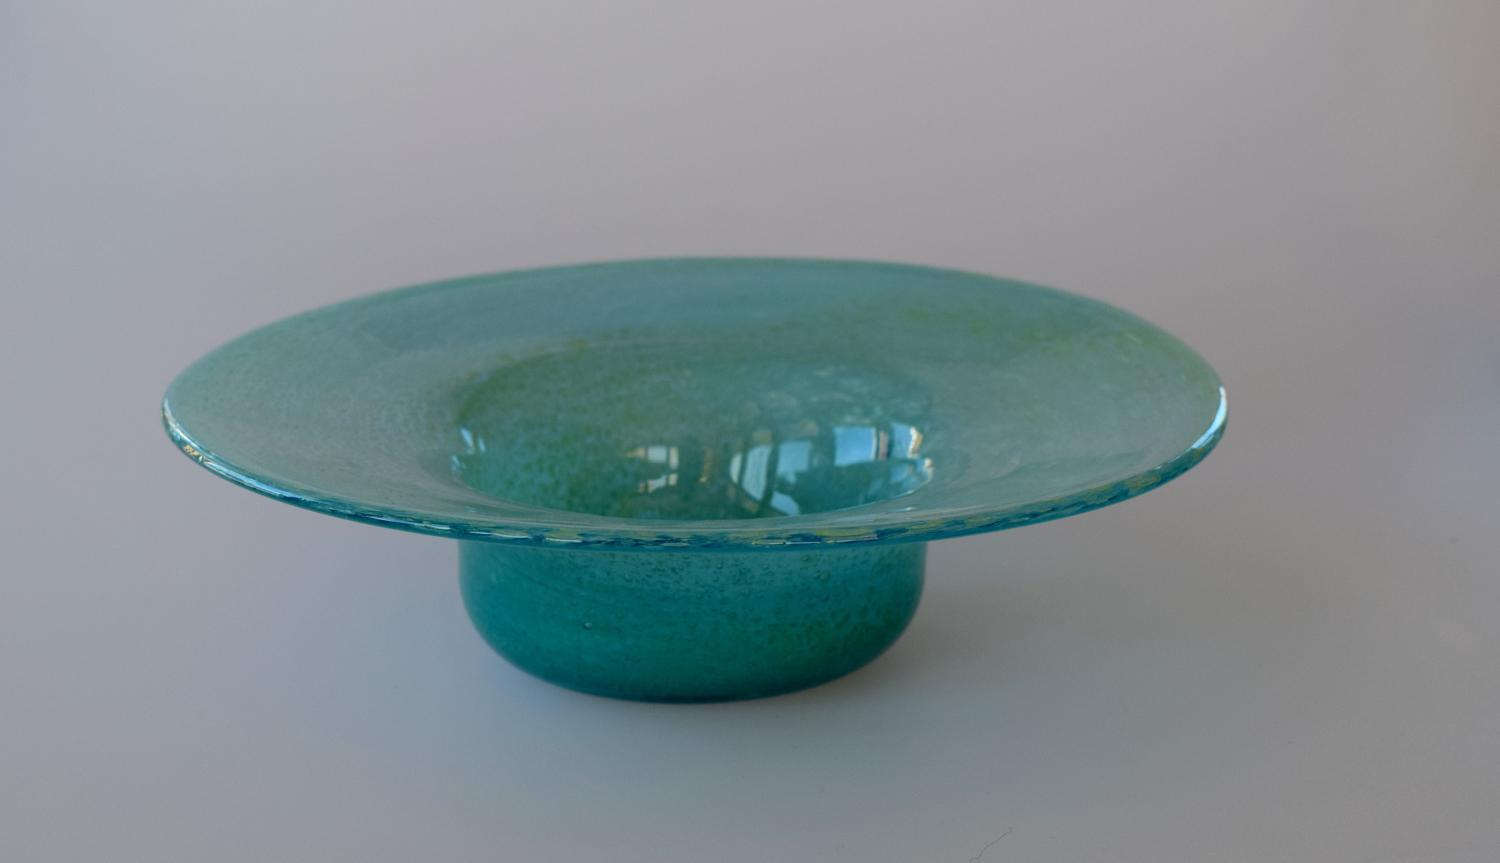 Nazeing blue and green cloudy bowl